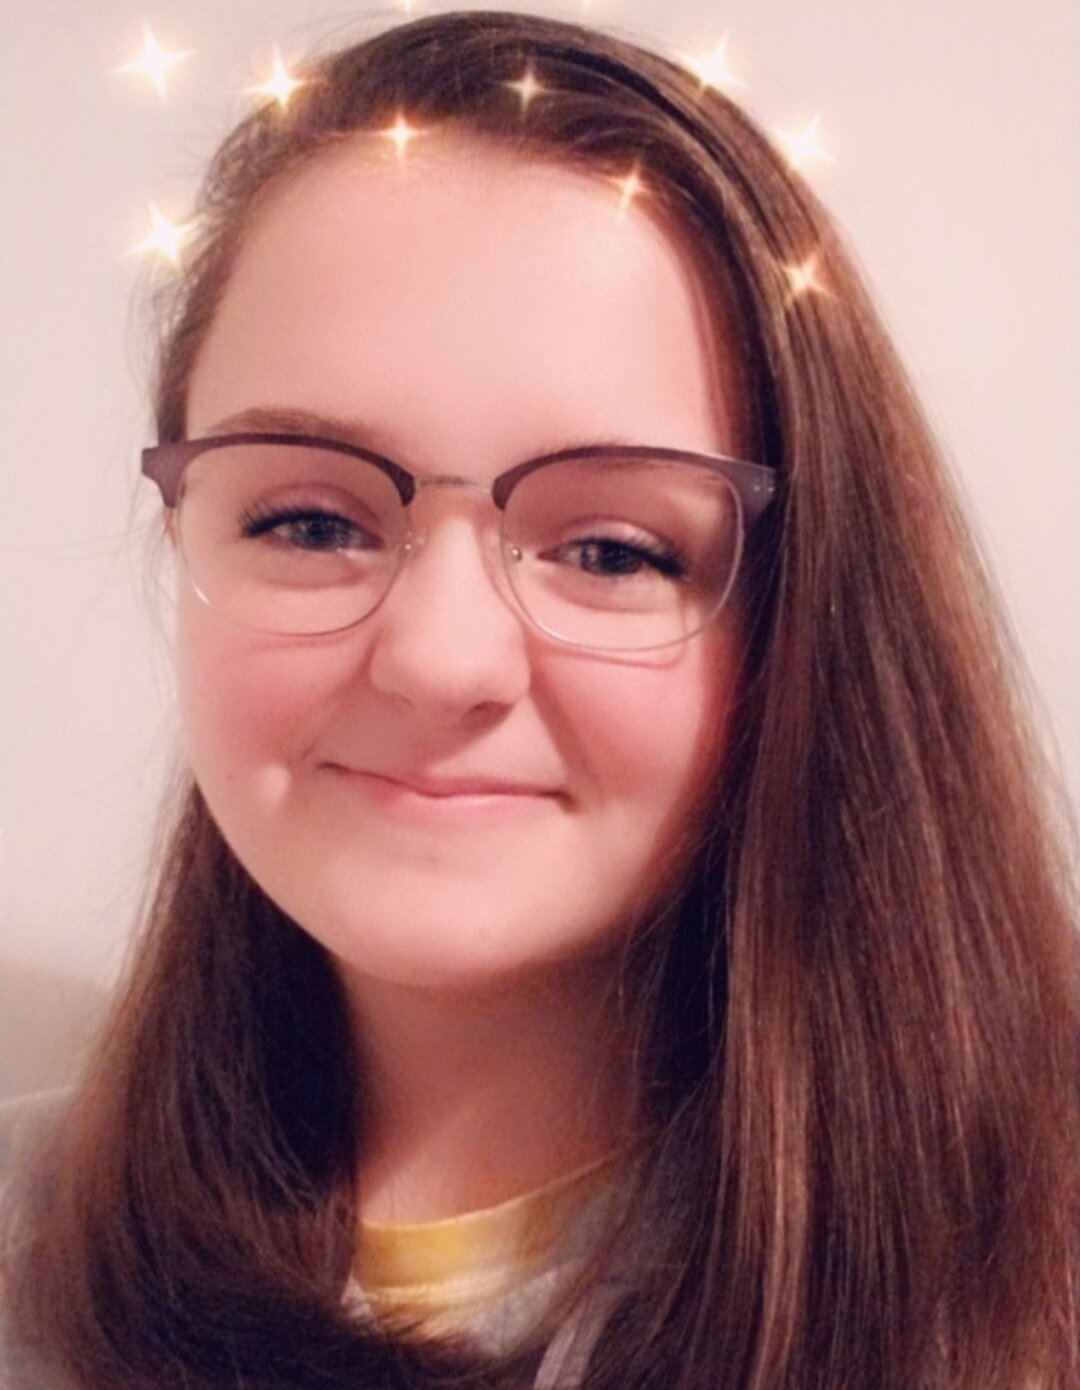 Trinity Green - (Asst. Master Electrician, Set Designer) is a sophomore who is very excited to be designing for the first time and watching it come to life on stage. She previously worked on lights for Les Misérables and was an assistant stage manager during the 2018-19 Winter One Acts. She'd like to thank Ms. Nash for trusting her to design a set even though she had no clue what she was doing, Emma, Sam, and Meg for keeping her sane while trying to manage AP World and theatre, and her parents for supporting her endlessly.